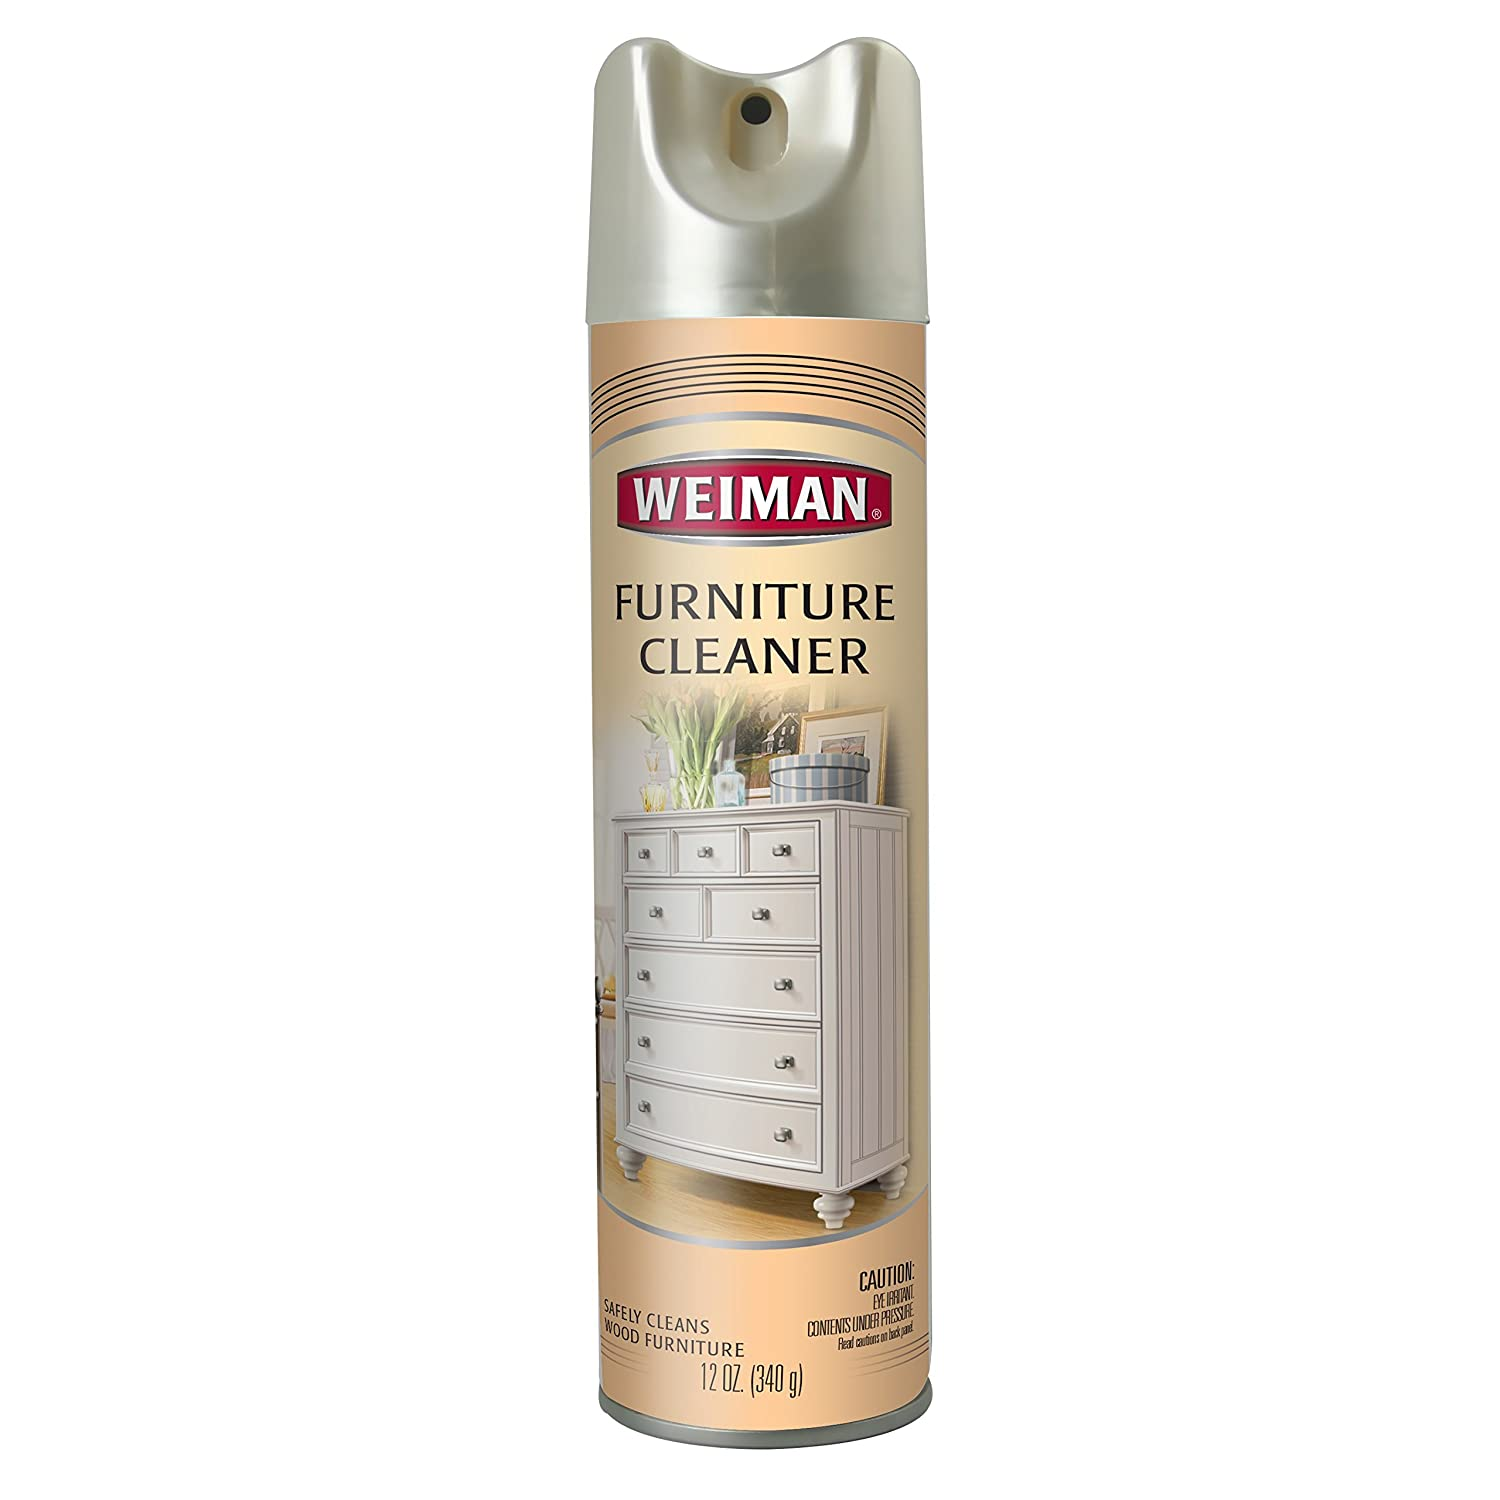 Weiman Furniture Cleaner Aerosol, 12 oz.